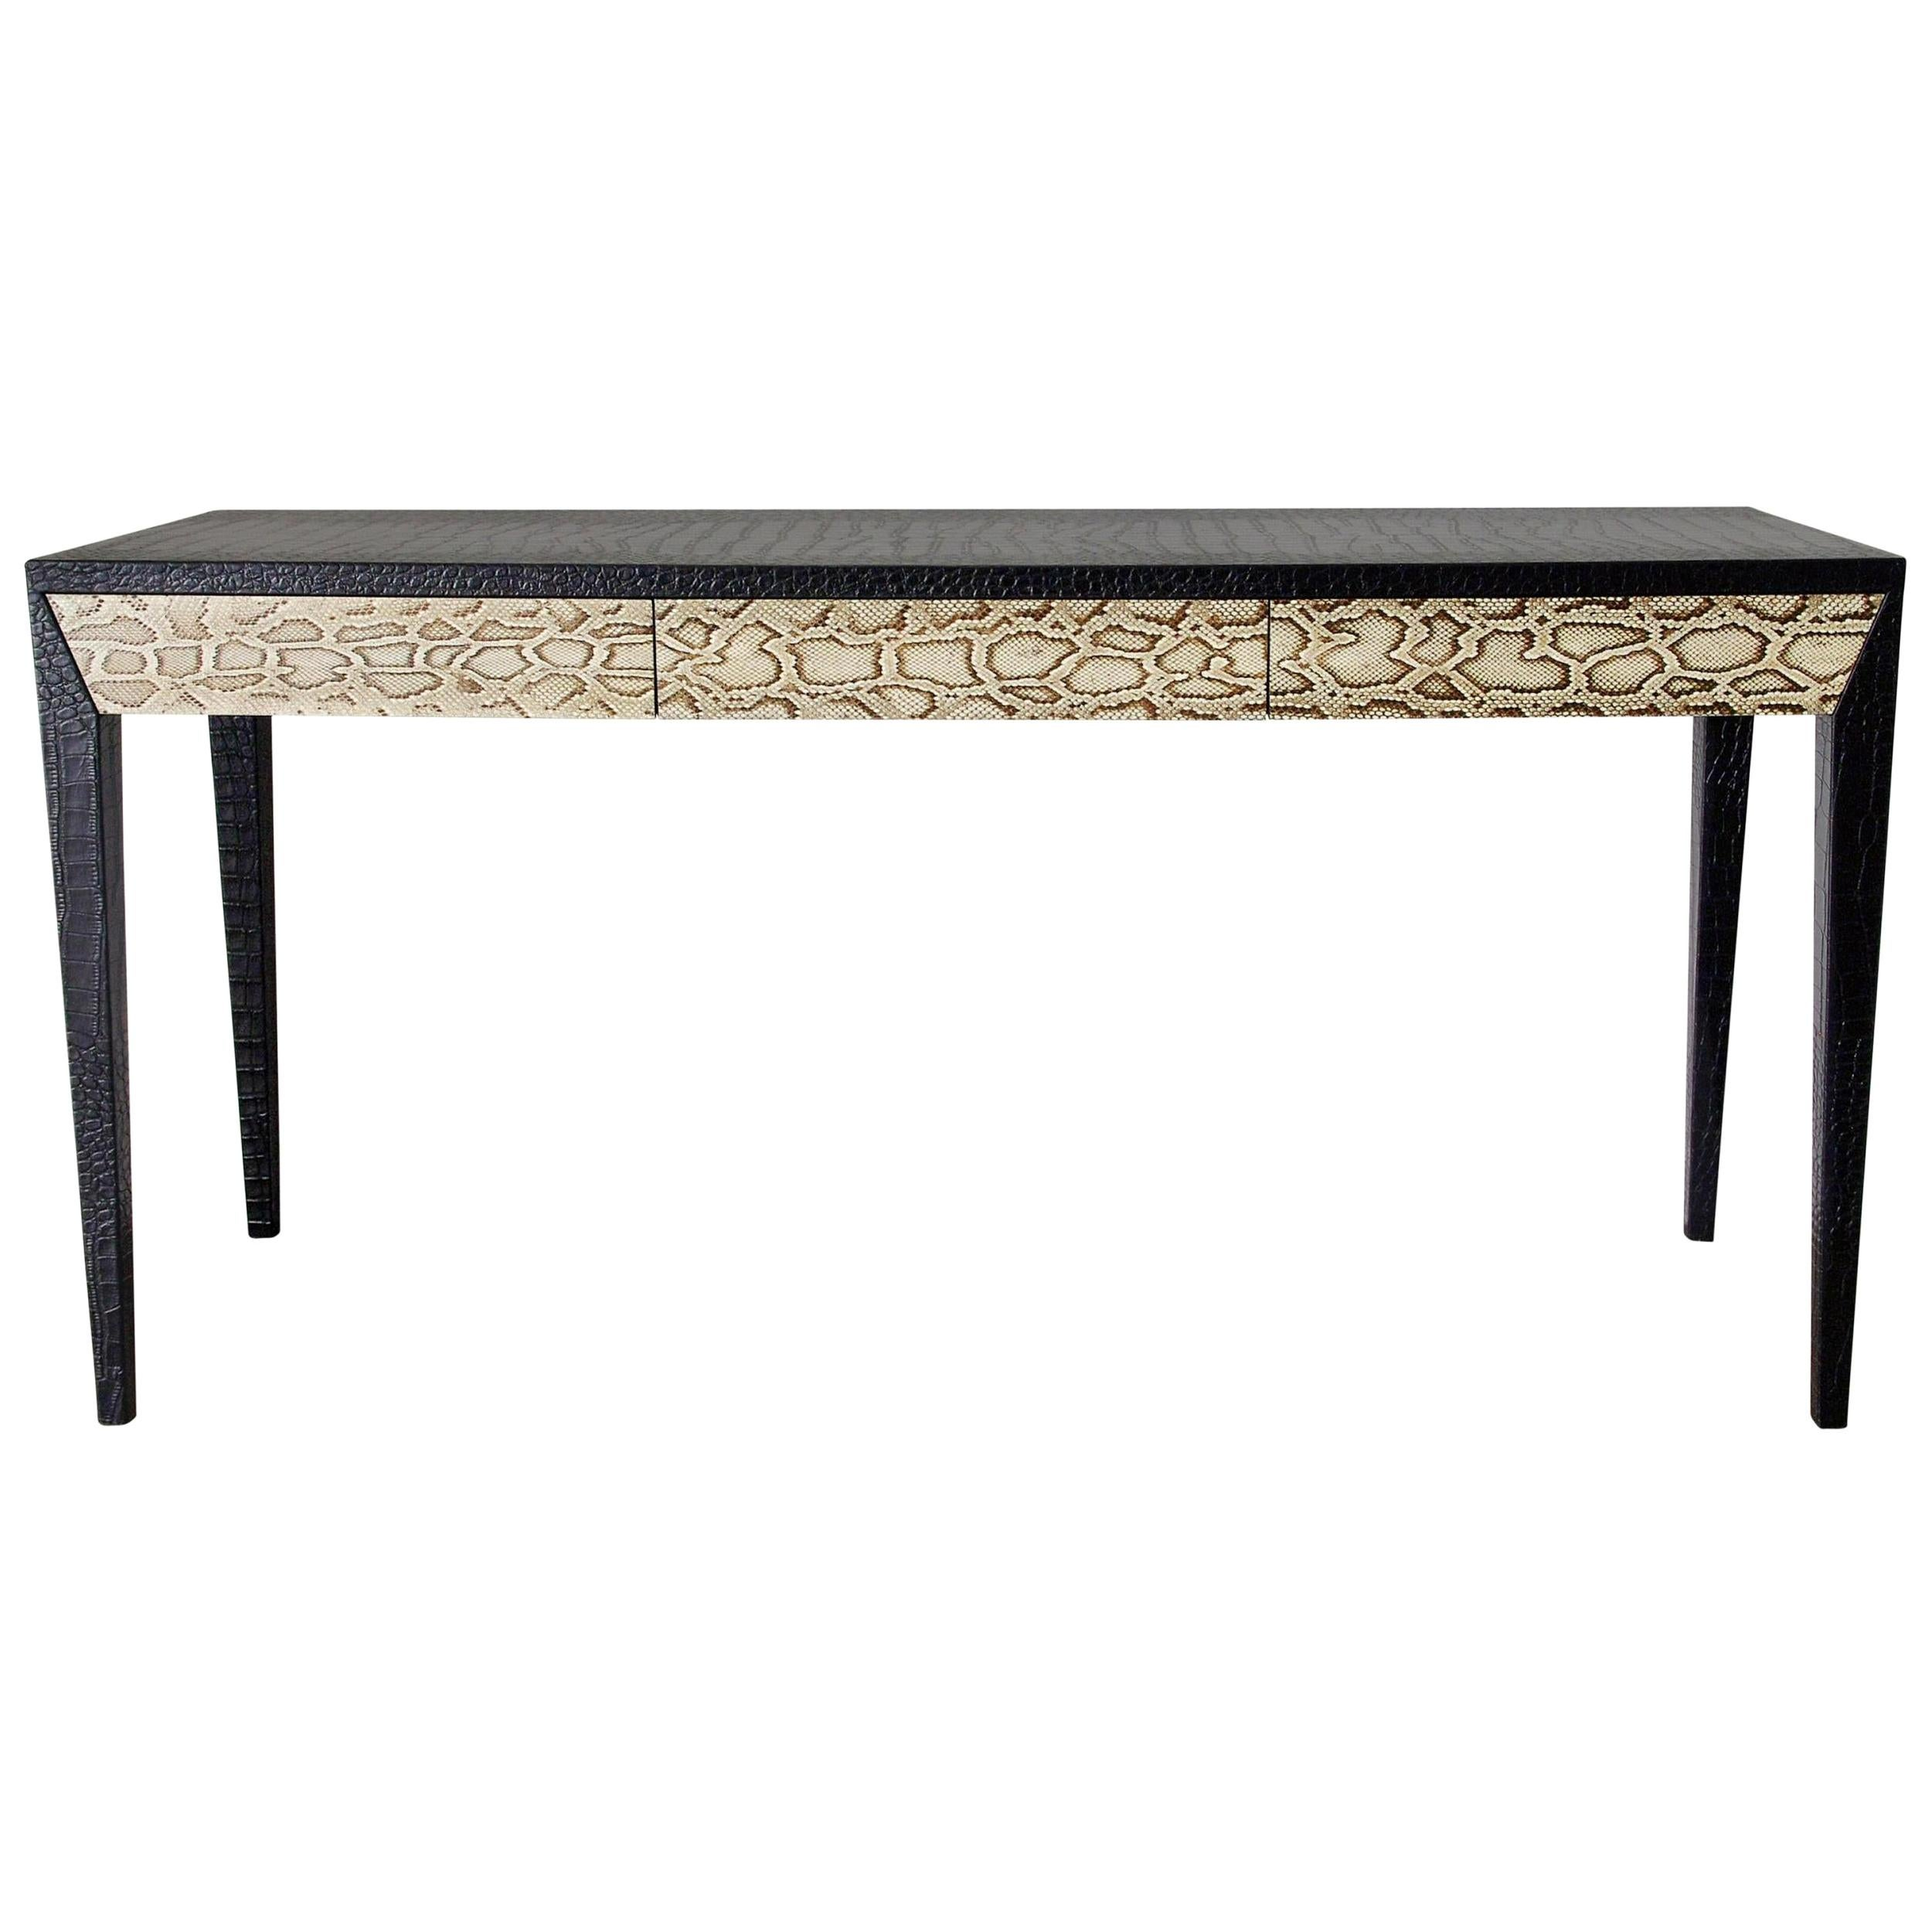 Chic Console Table w/ Black Leather & Snake Skin Attrib. to Karl Springer, 1970s